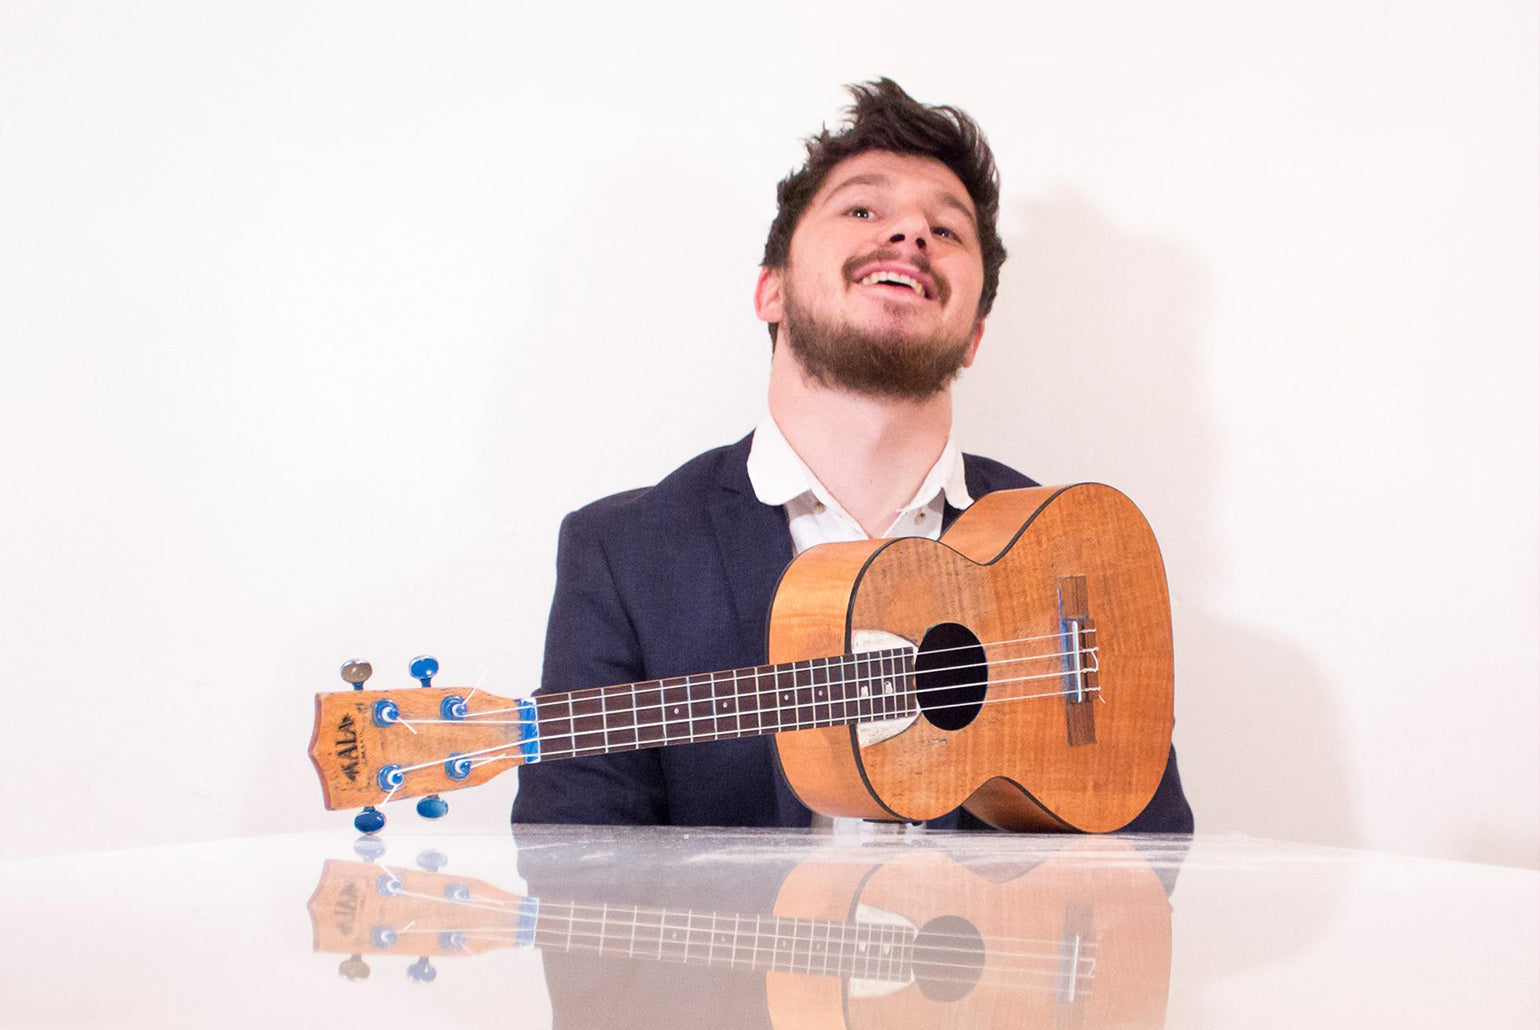 Life Arranged on the Ukulele: Q&A with Eat My Uke